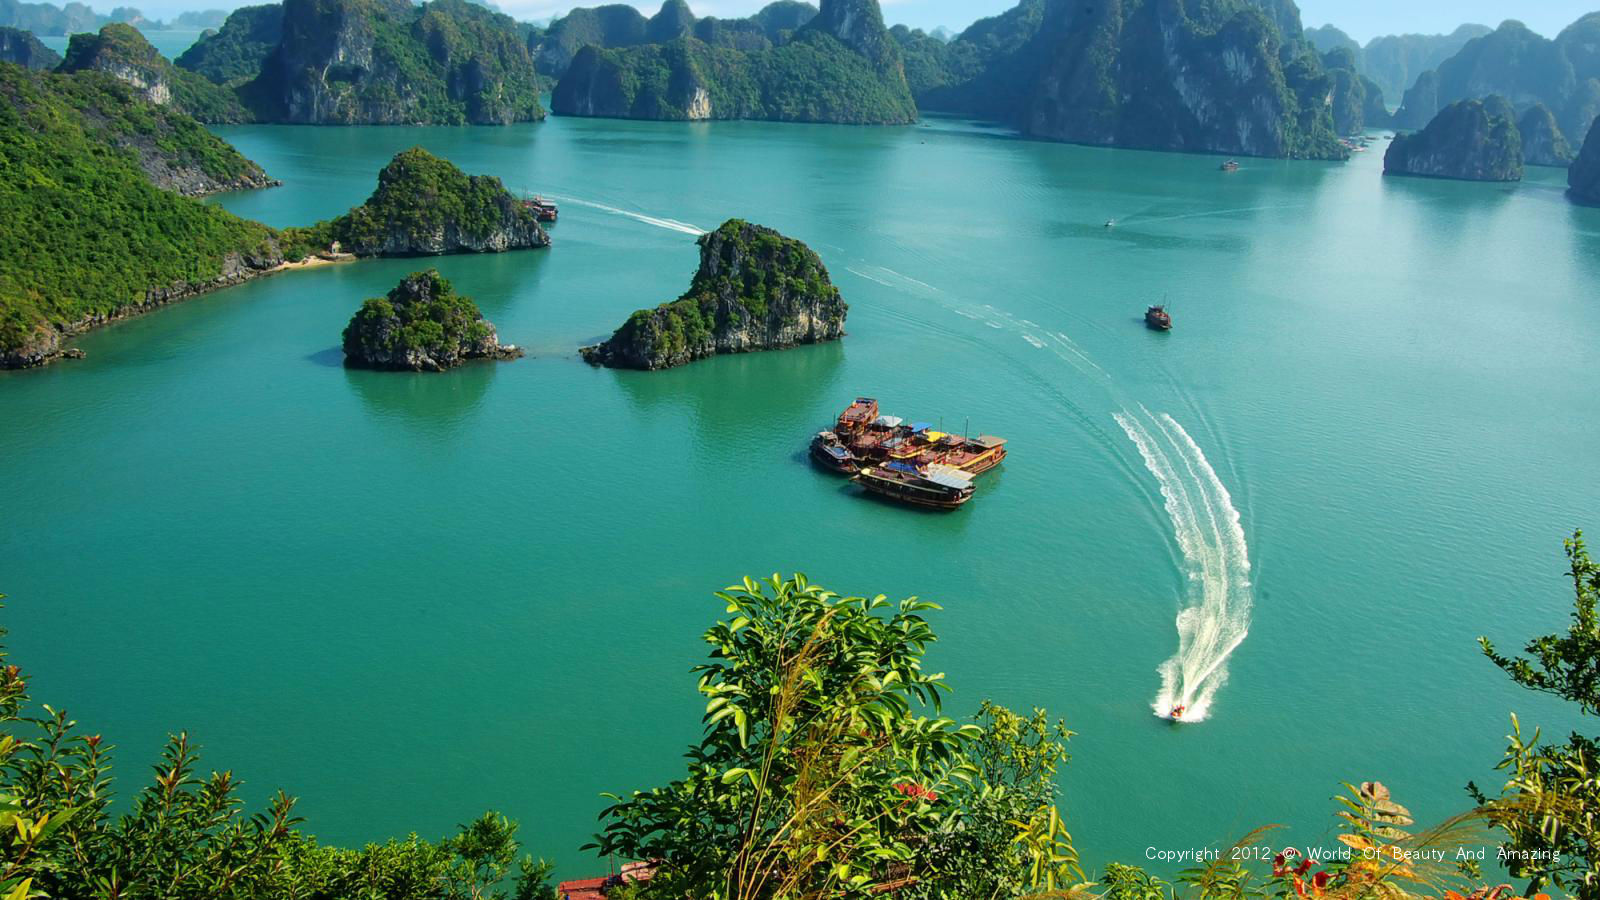 Top 4 Southeast Asia Travel Destinations